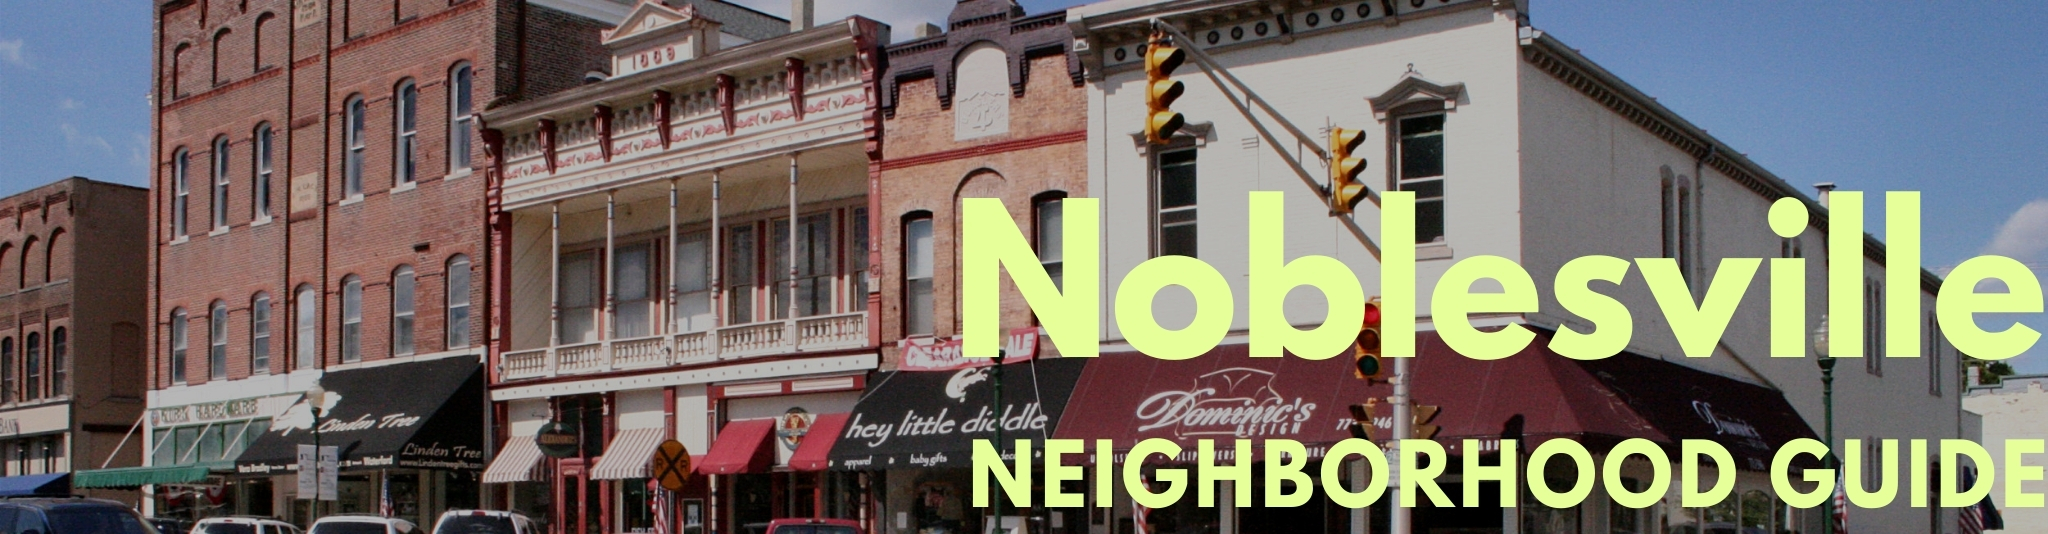 Downtown Noblesville Indiana real estate and homes for sale